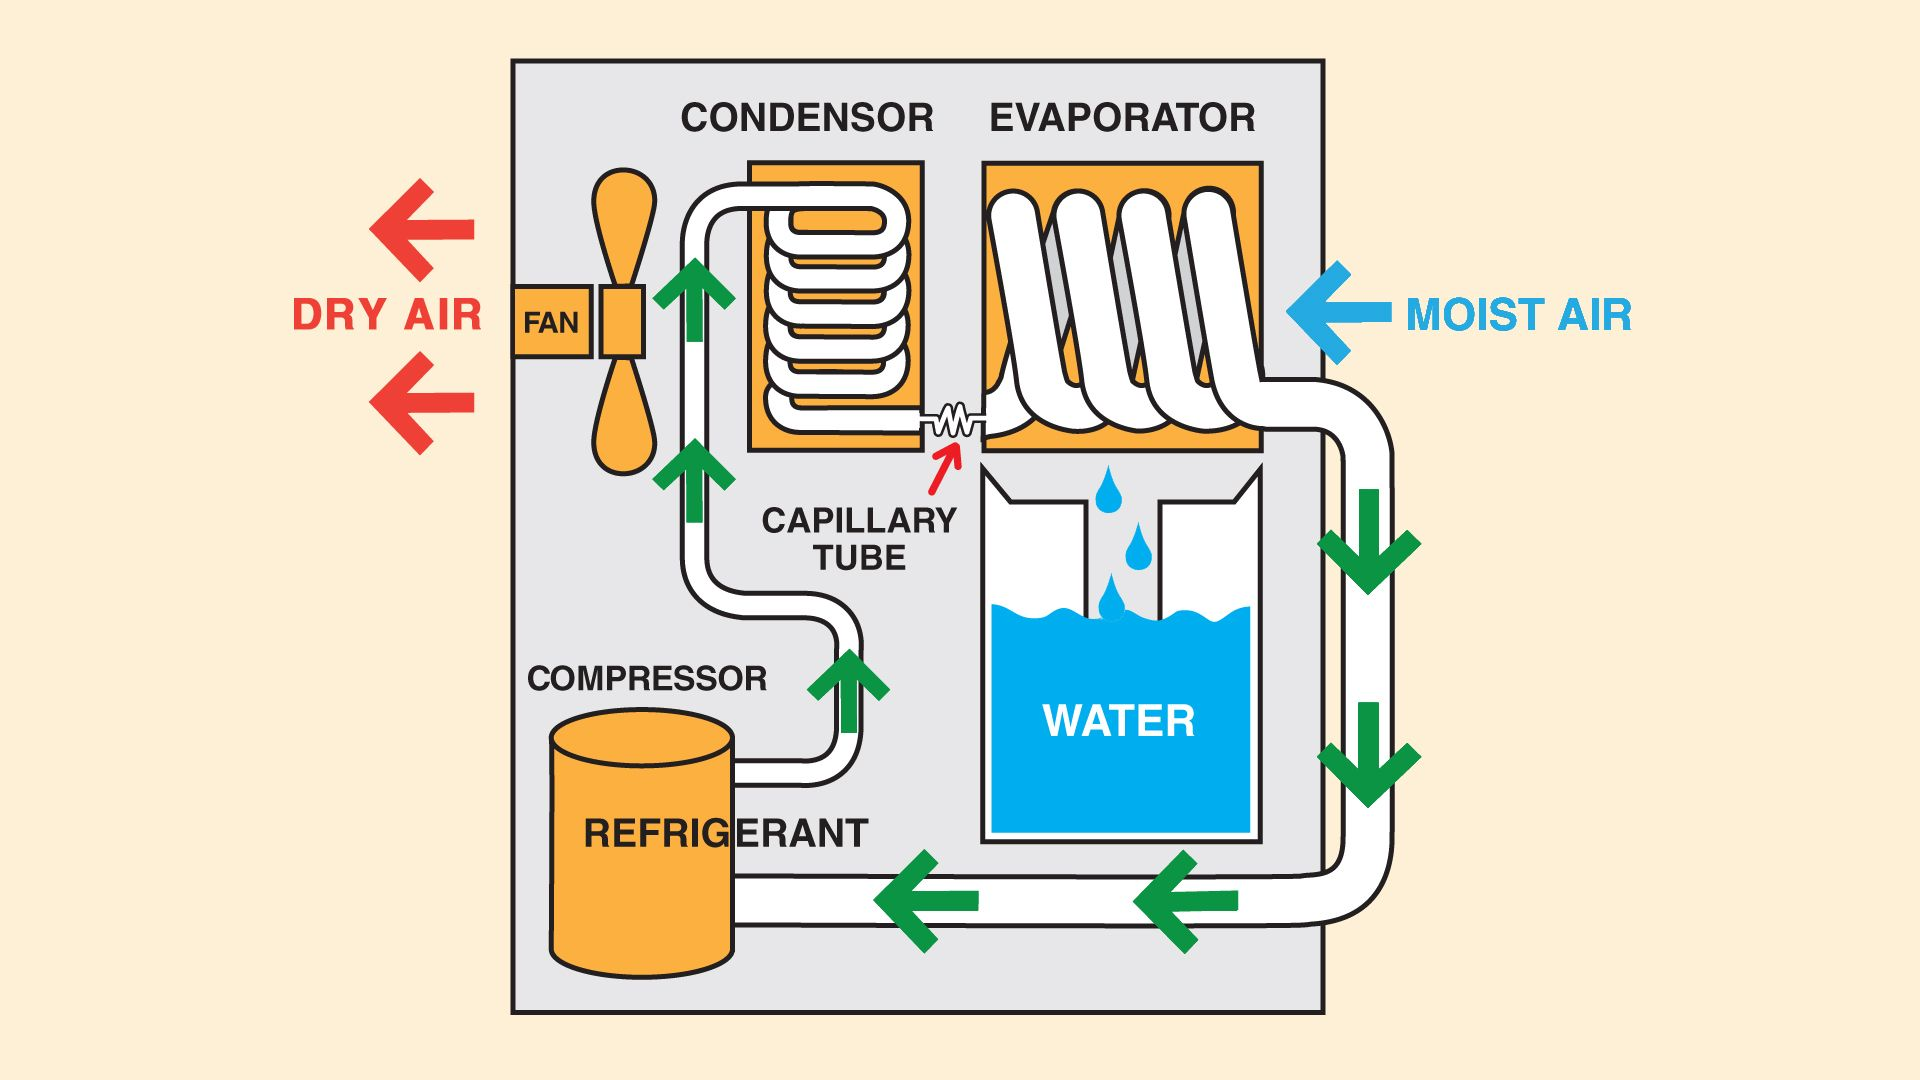 hight resolution of dehumidifier diagram plumbing how to dehumidifiers heating diagram of a dehumidifier